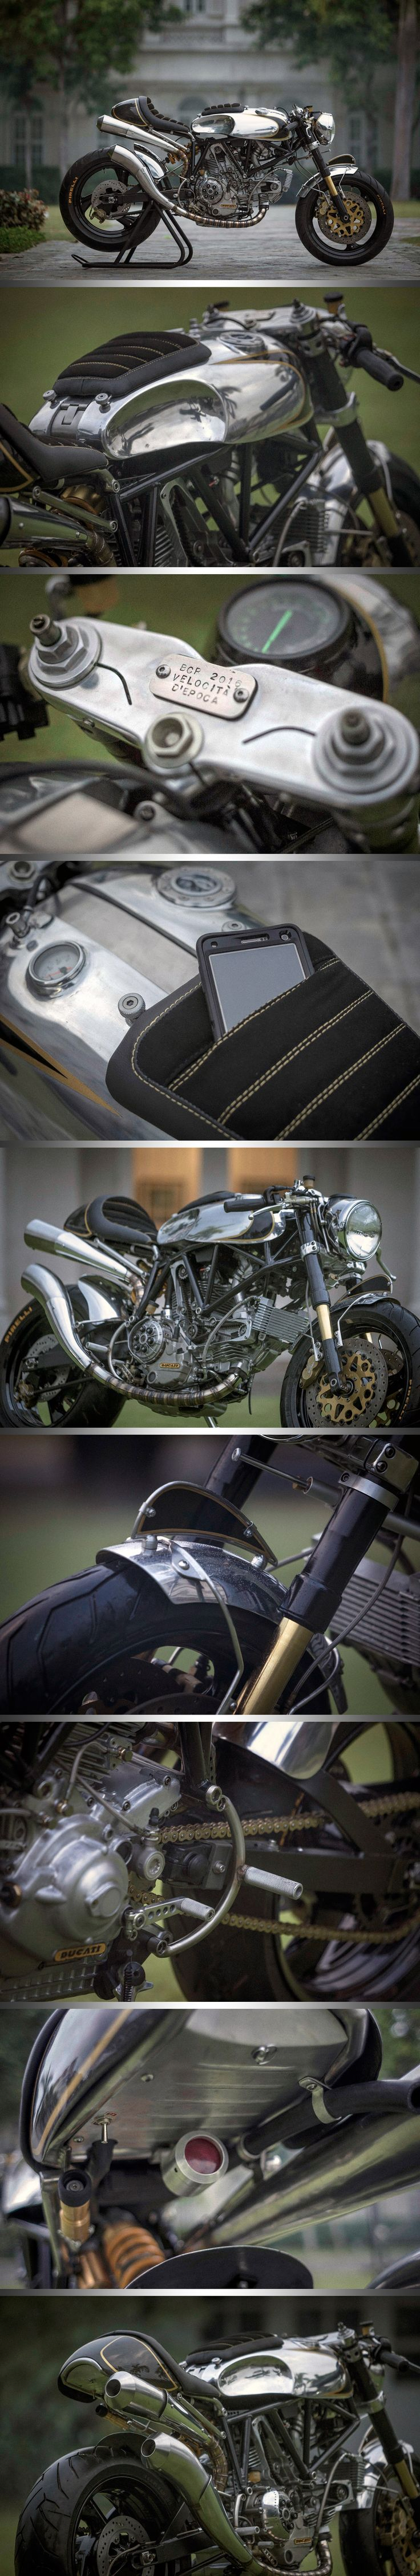 Ducati 900ss Cafe Racer by BCR